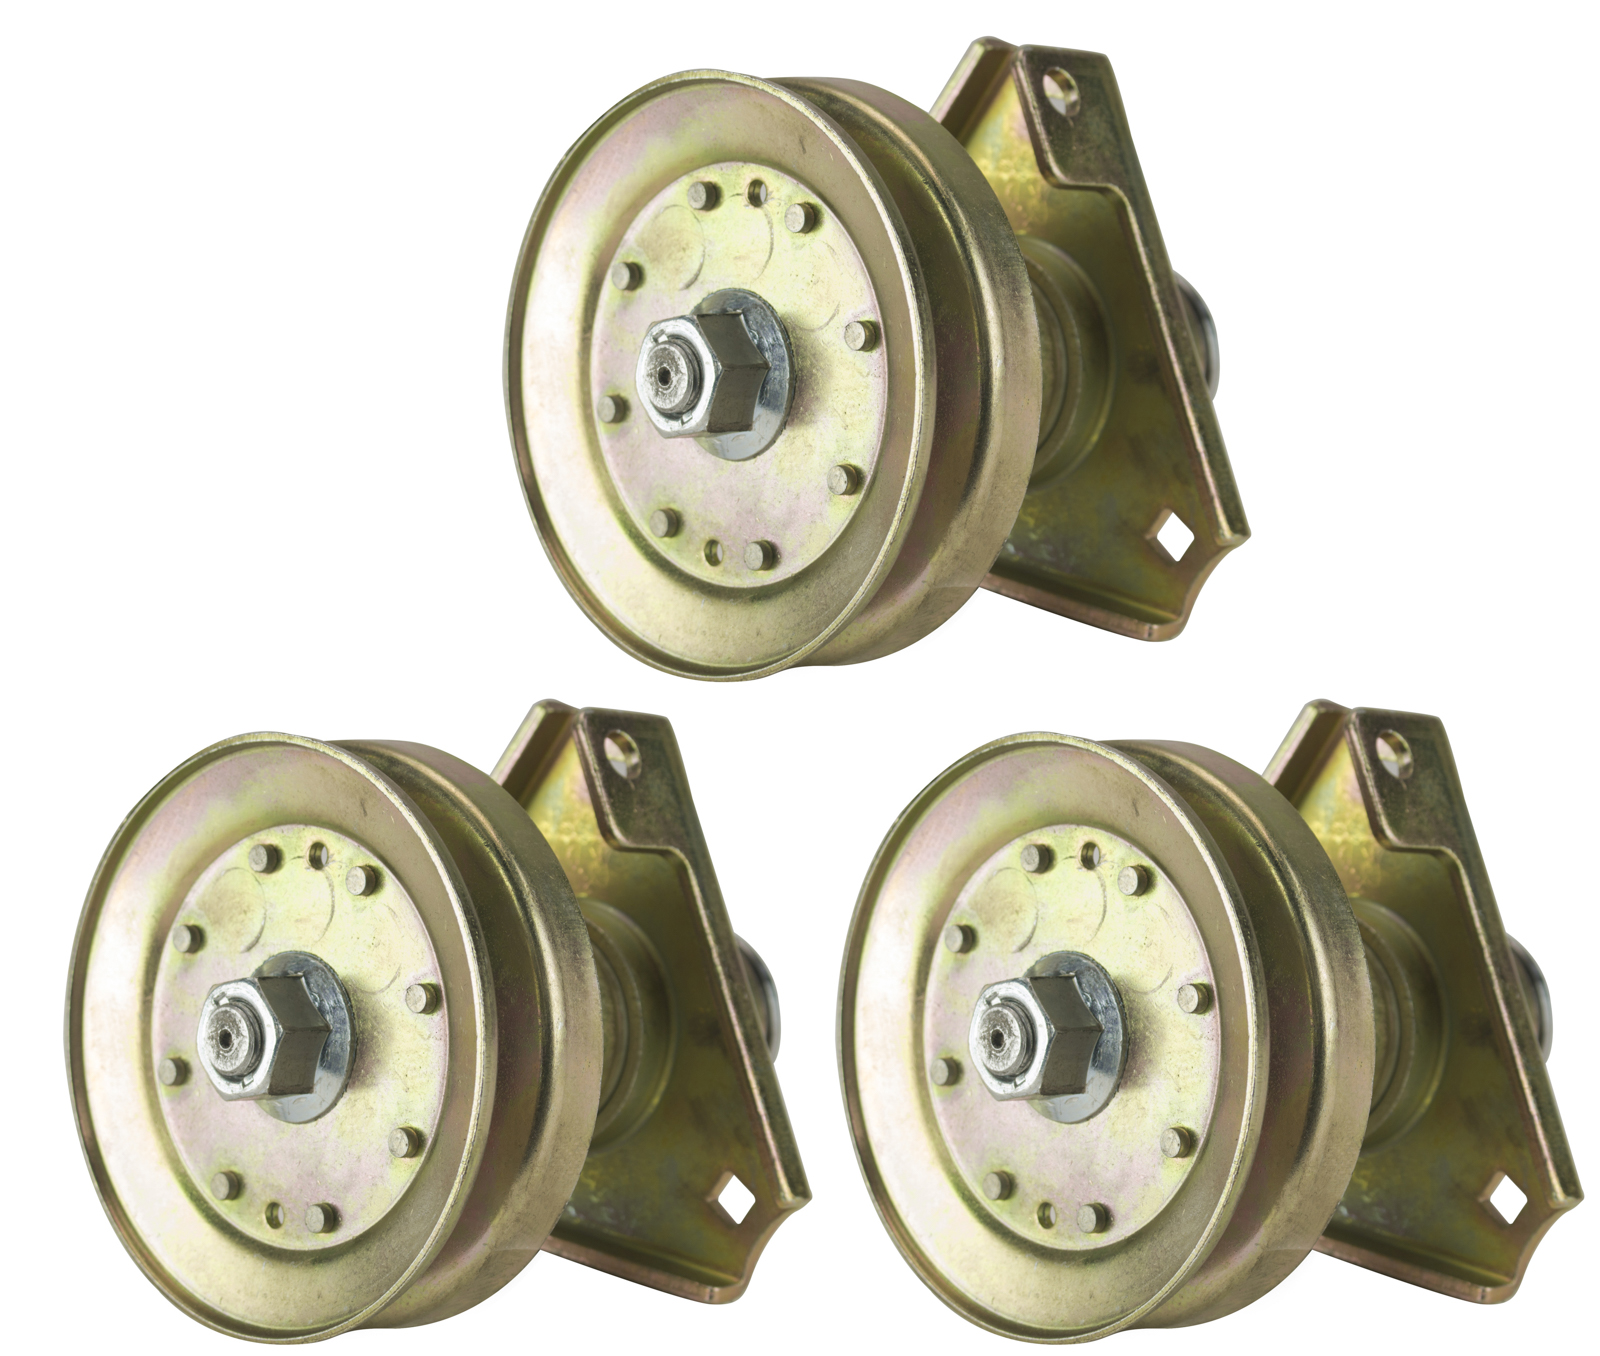 Three (3) Pack Erie Tools Lawn Mower Spindle Assembly Fits John Deere AM126226 LT 160, LT 166, LT 180, Sabre Lawn... by Erie Tools